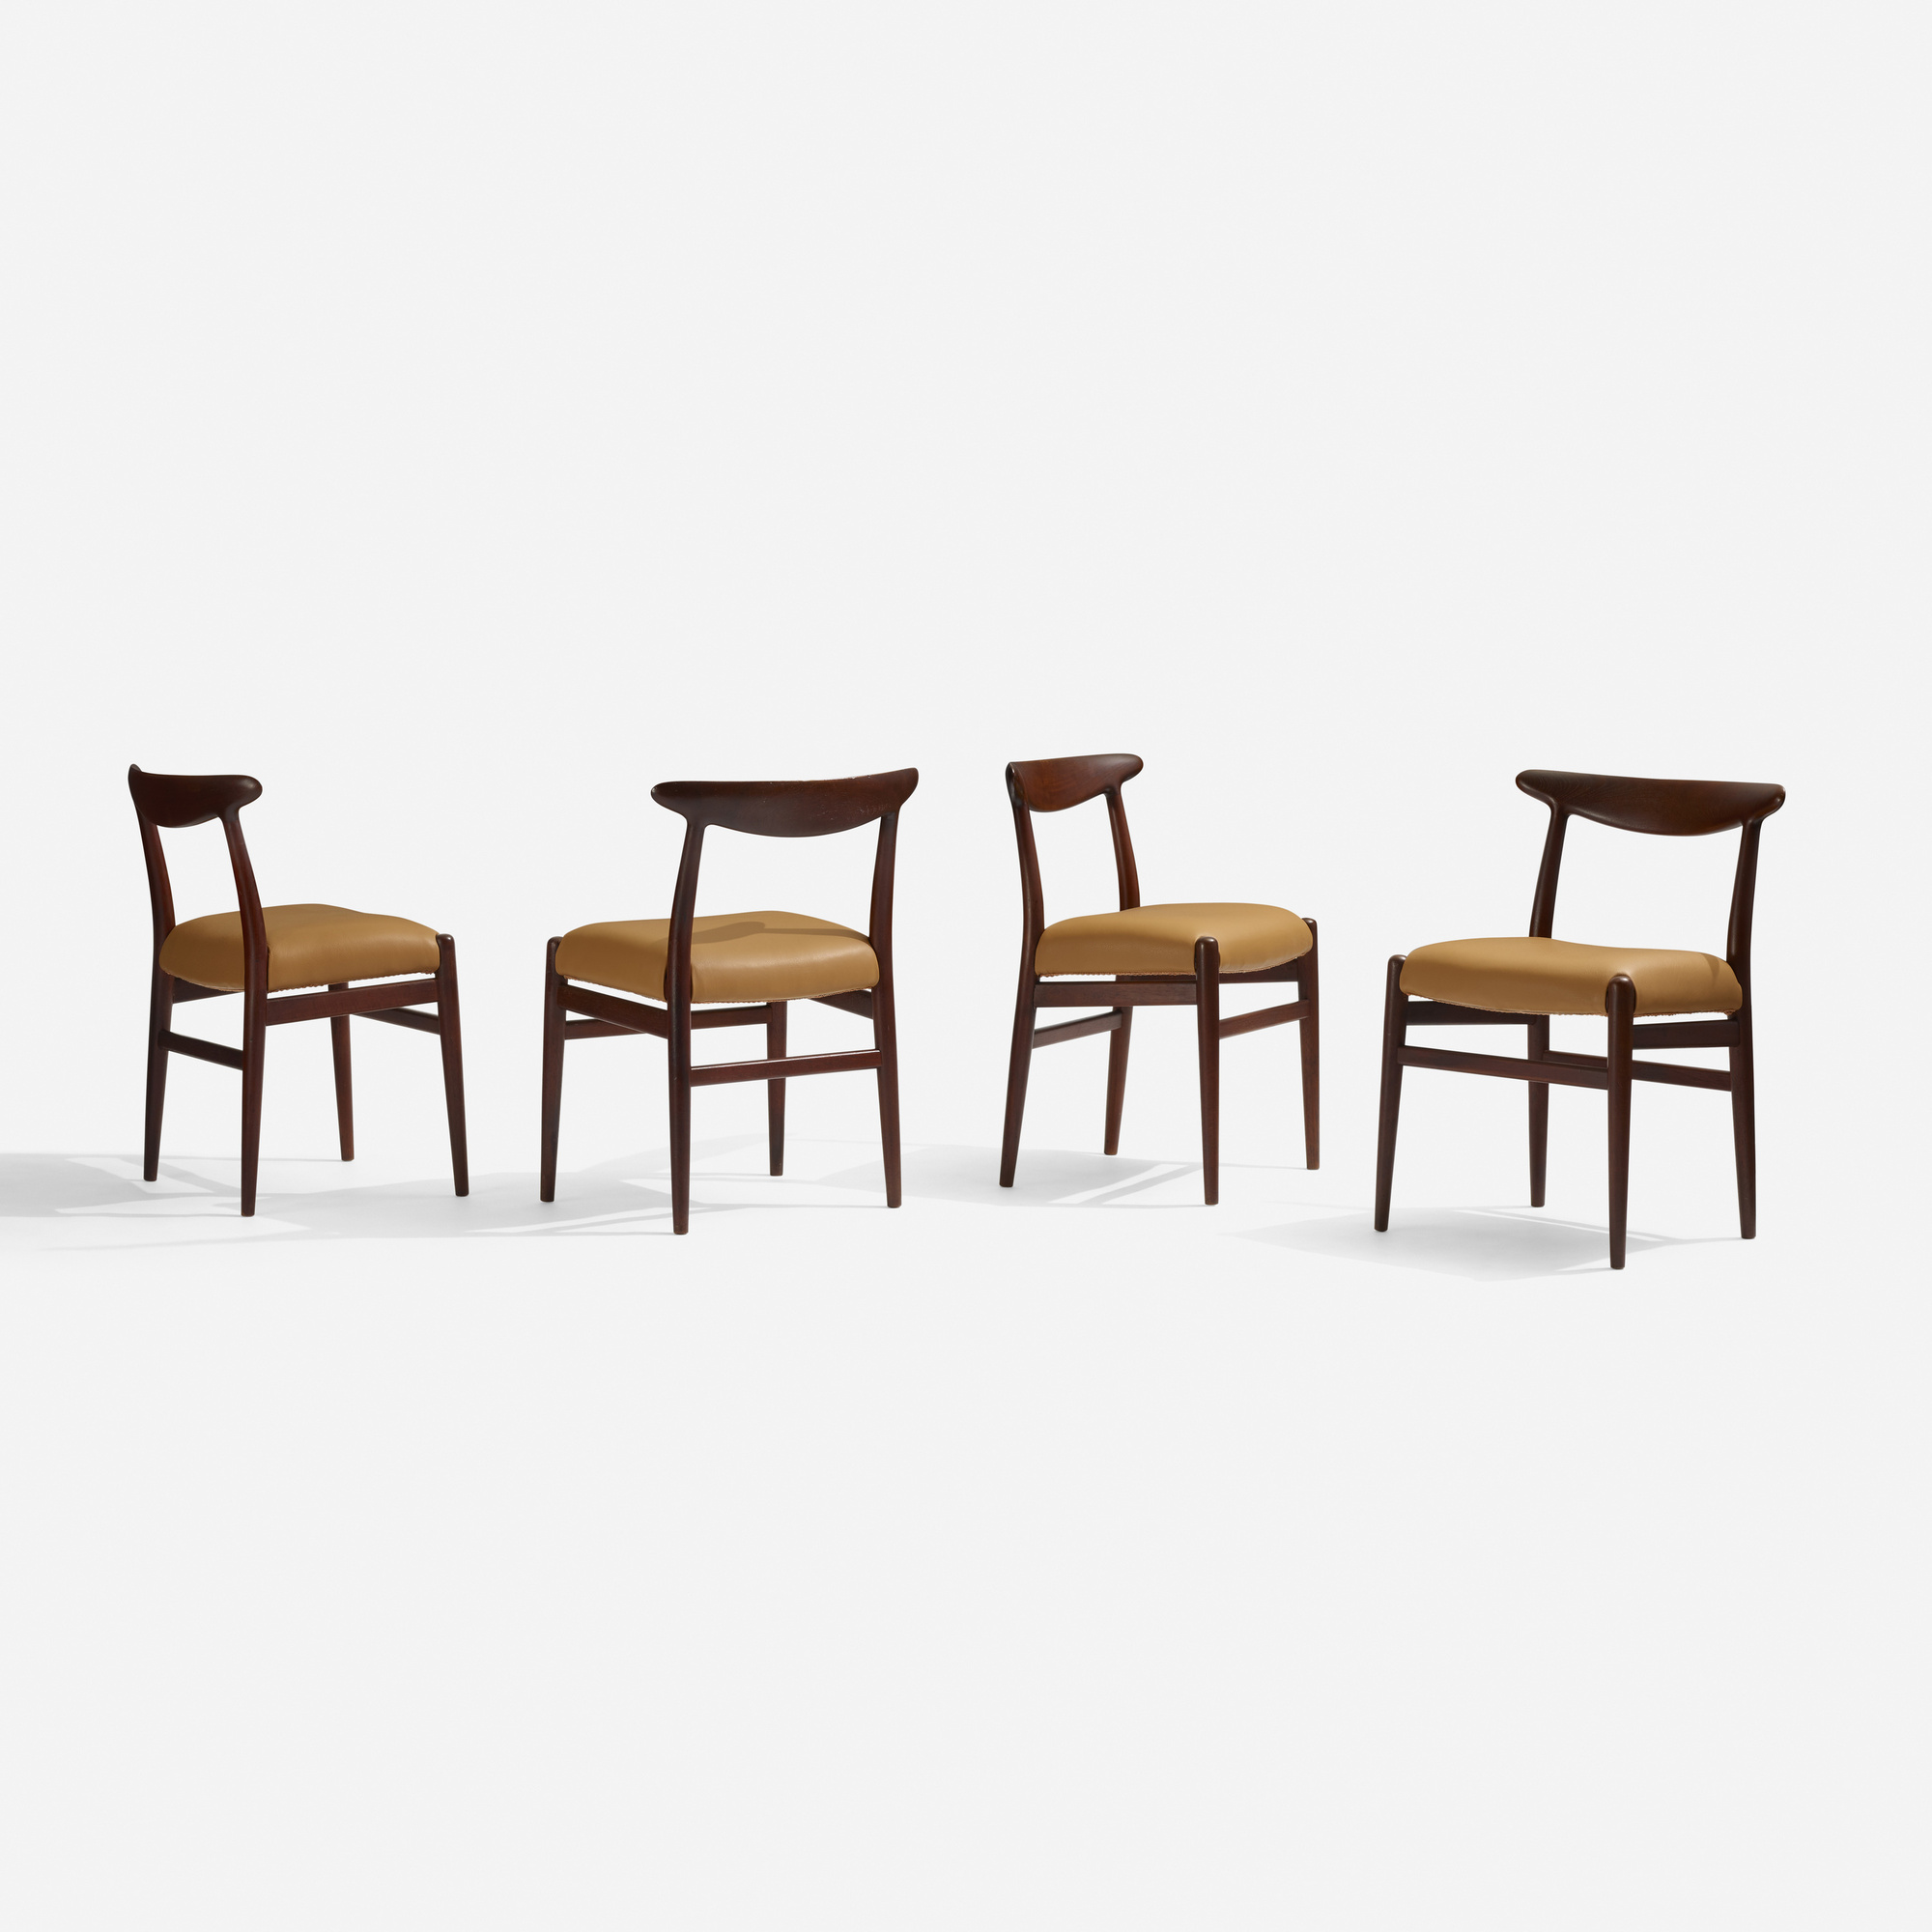 281: Hans J. Wegner / dining chairs, set of eight (3 of 3)